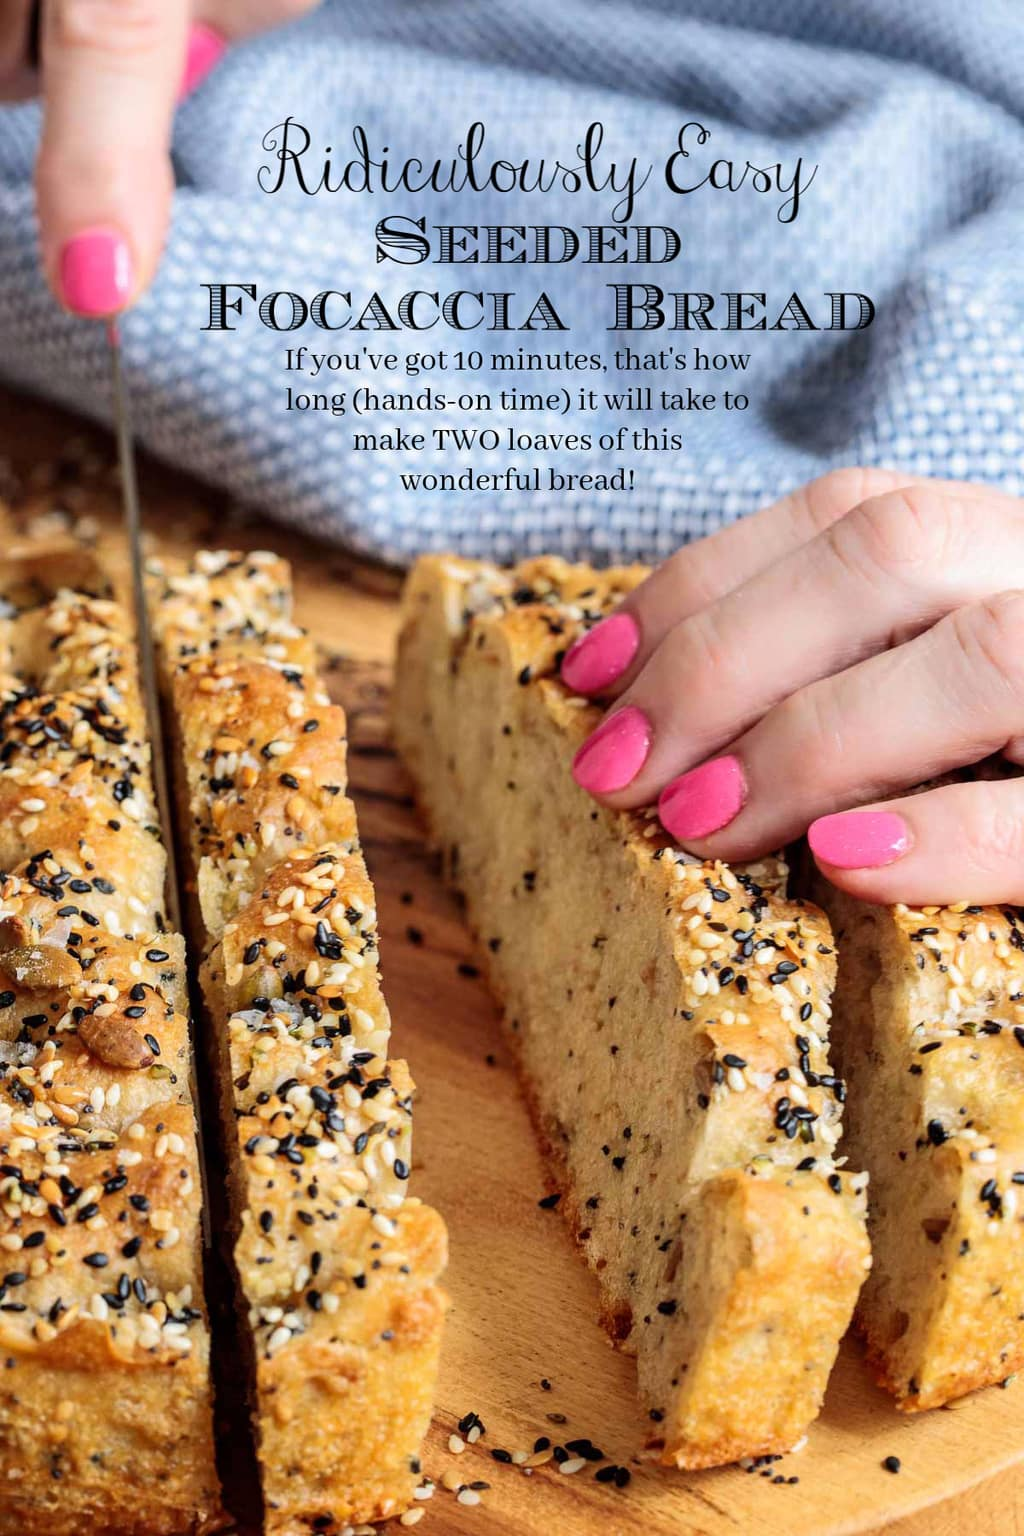 Loaded with healthy seeds and a generous scoop of whole wheat flour, this ridiculously easy, one-bowl, no-knead Seeded Focaccia Bread is also no-knead delicious! #easyfocaccia, #focacciabread, #healthyfocaccia, #seededfocaccia